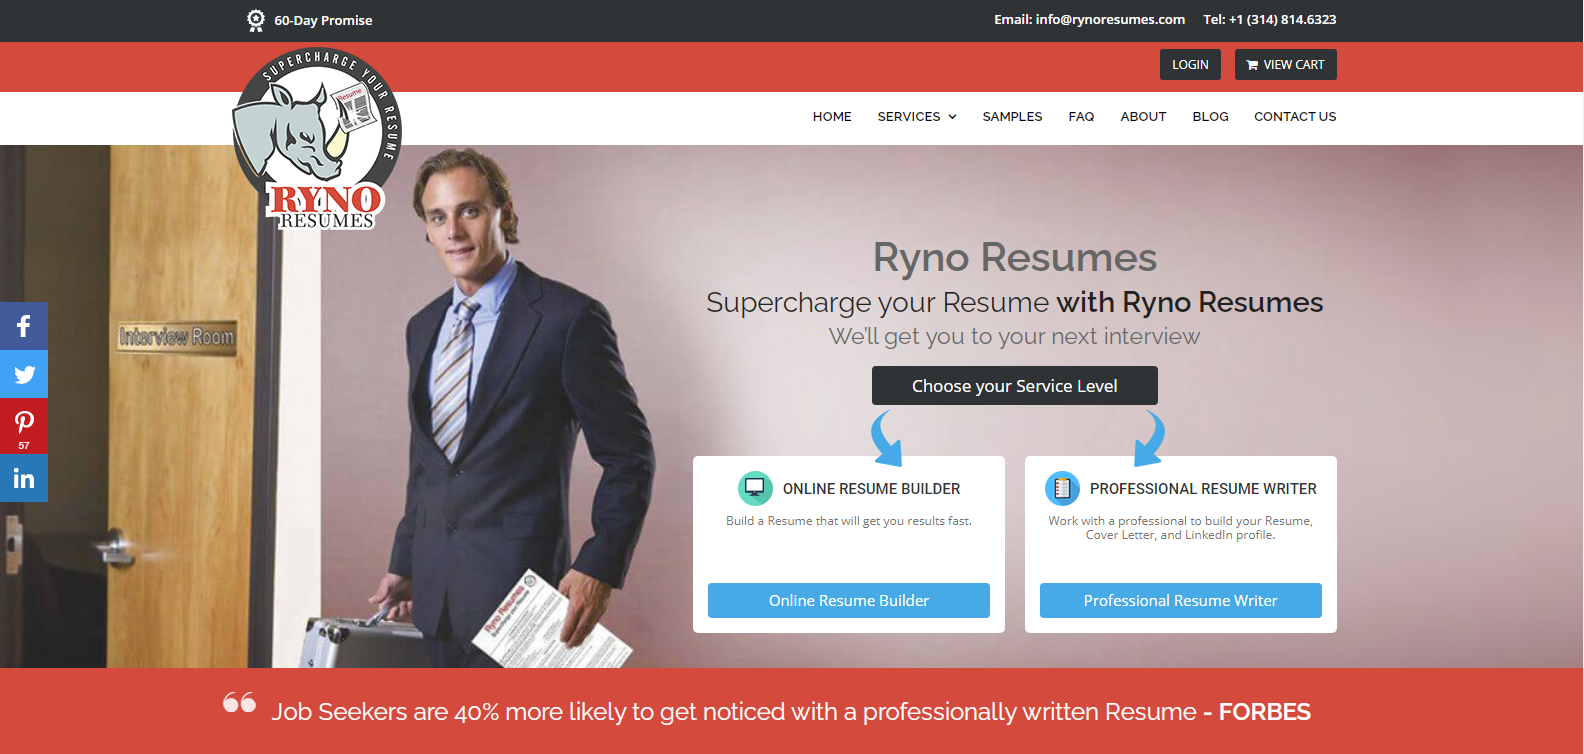 Best Sales Resume Services - Screenshot of Ryno Resumes Homepage